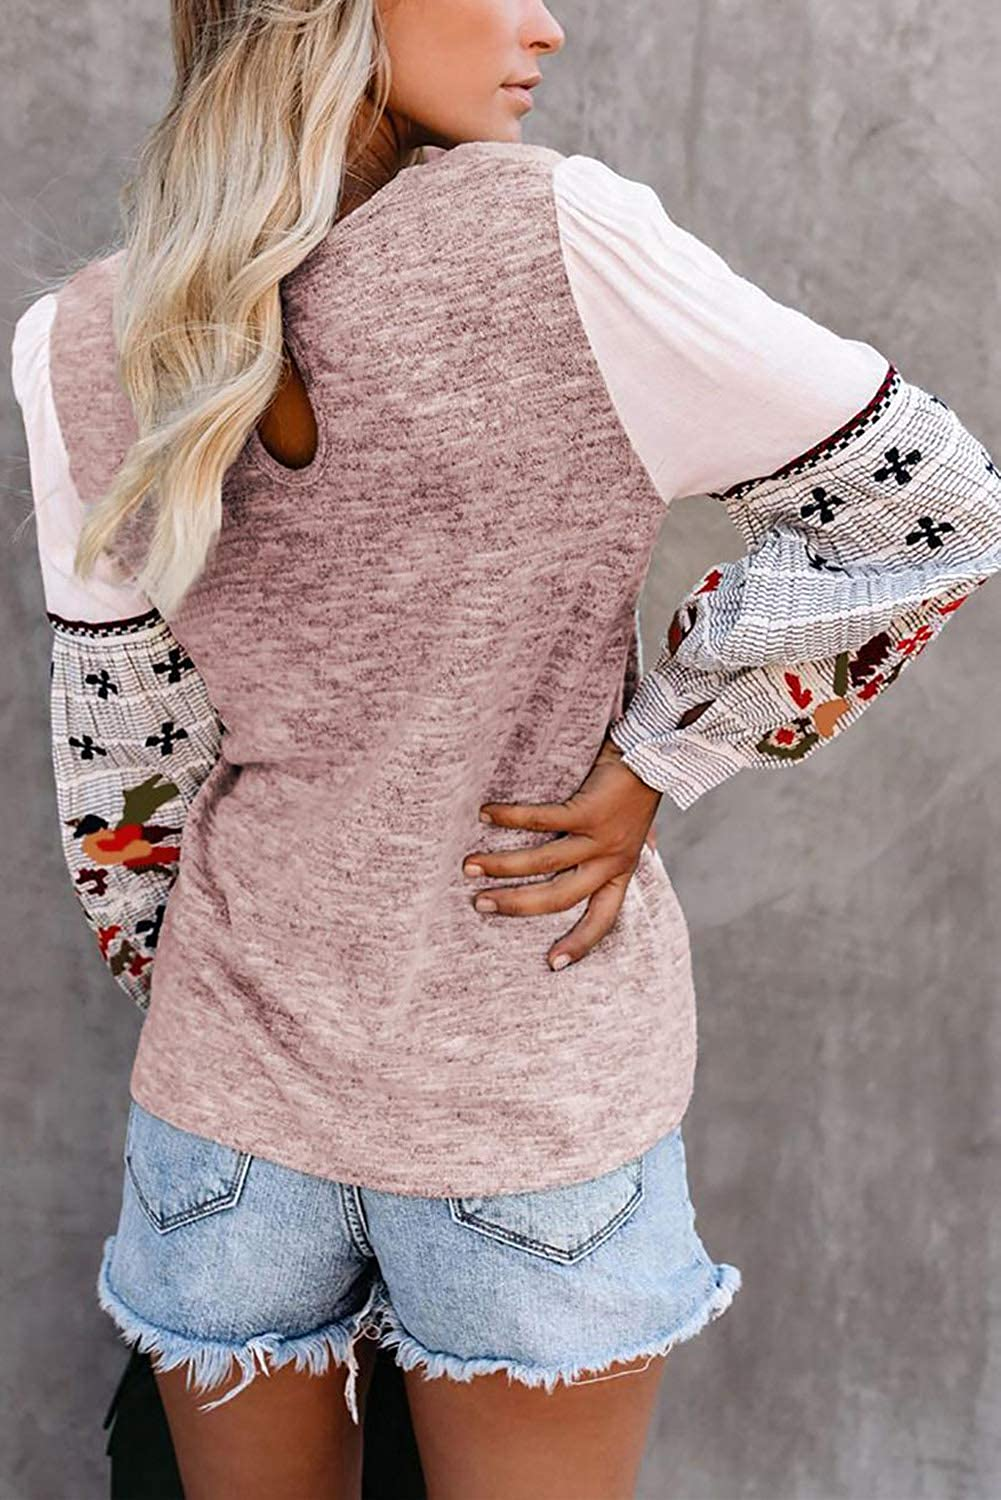 GOLDPKF Printed Long Sleeve Sweatshirts T Shirts for Women Casual Pullover Tops